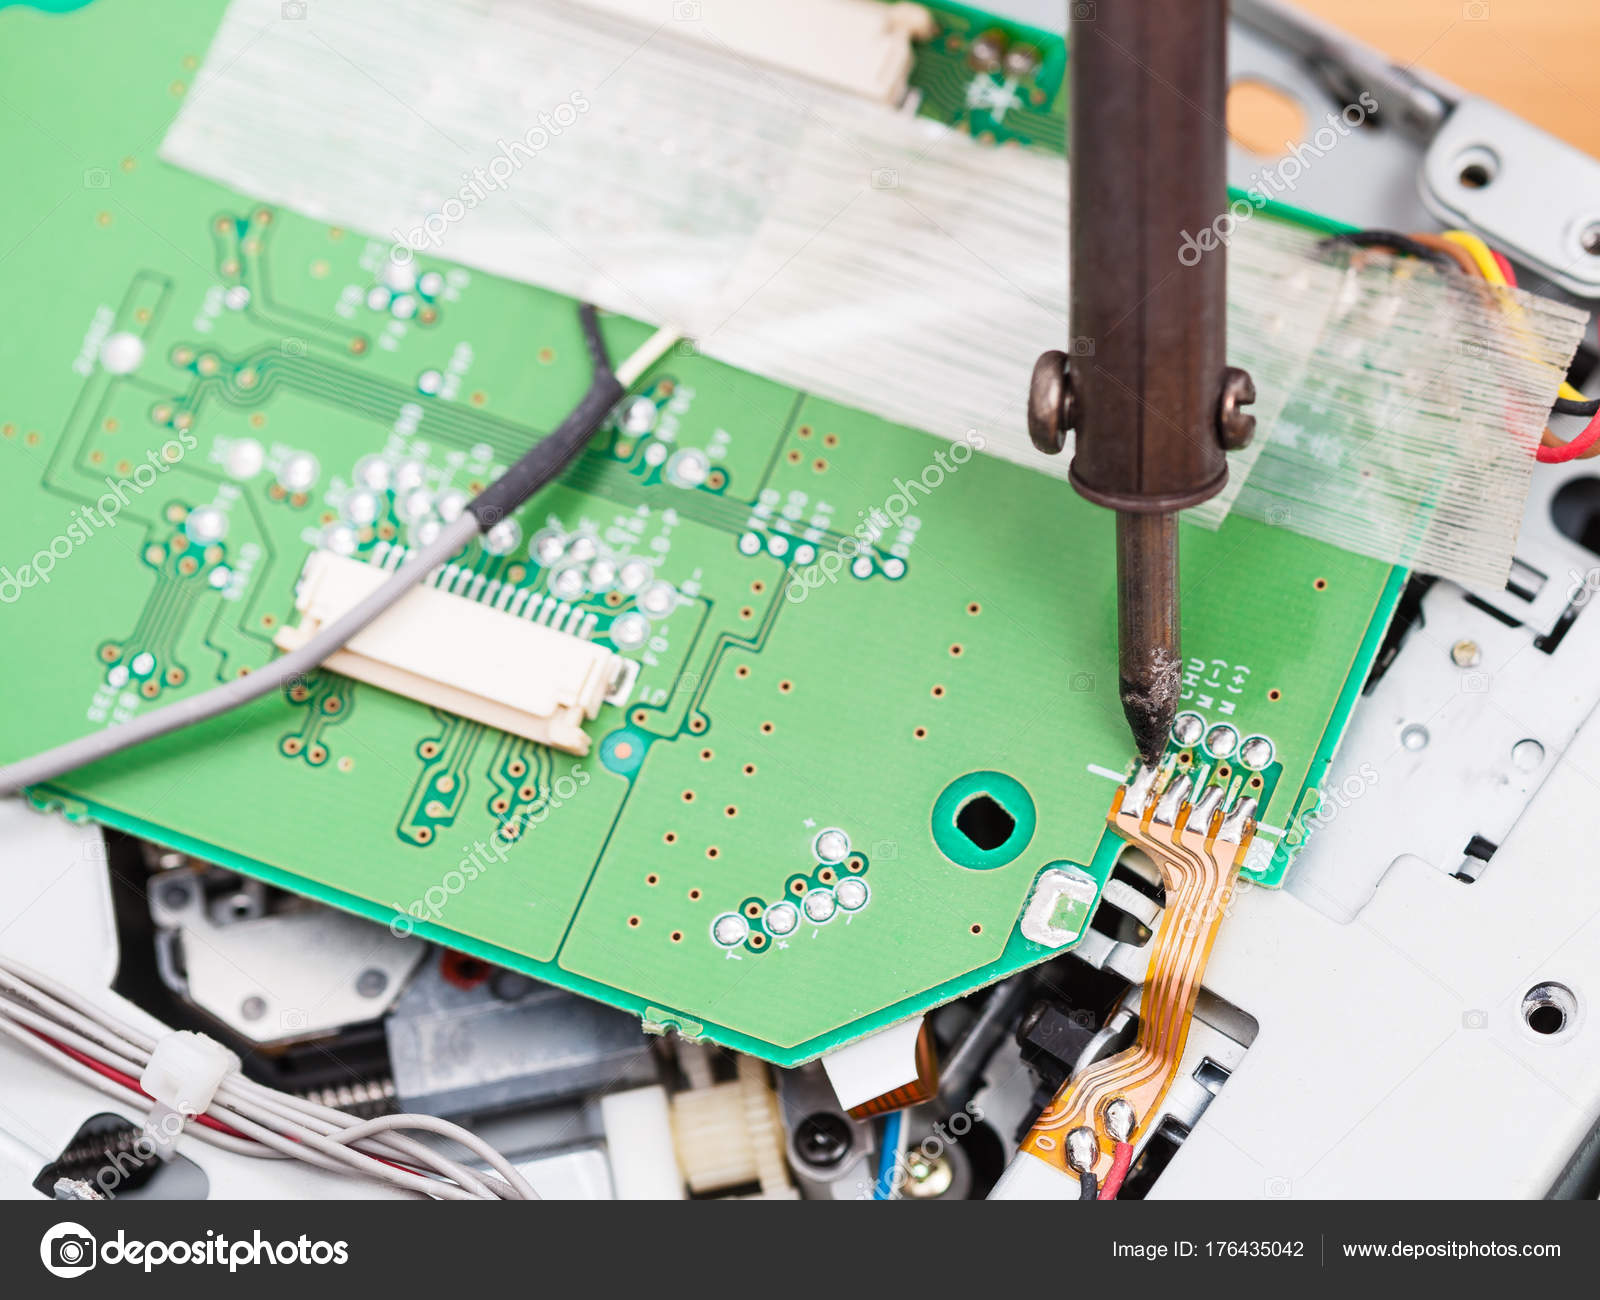 Solder Circuit Board Repair A Good Owner Manual Example Best Iron For Boards Electric With Soldering Stock Photo Rh Depositphotos Com Quality Hand